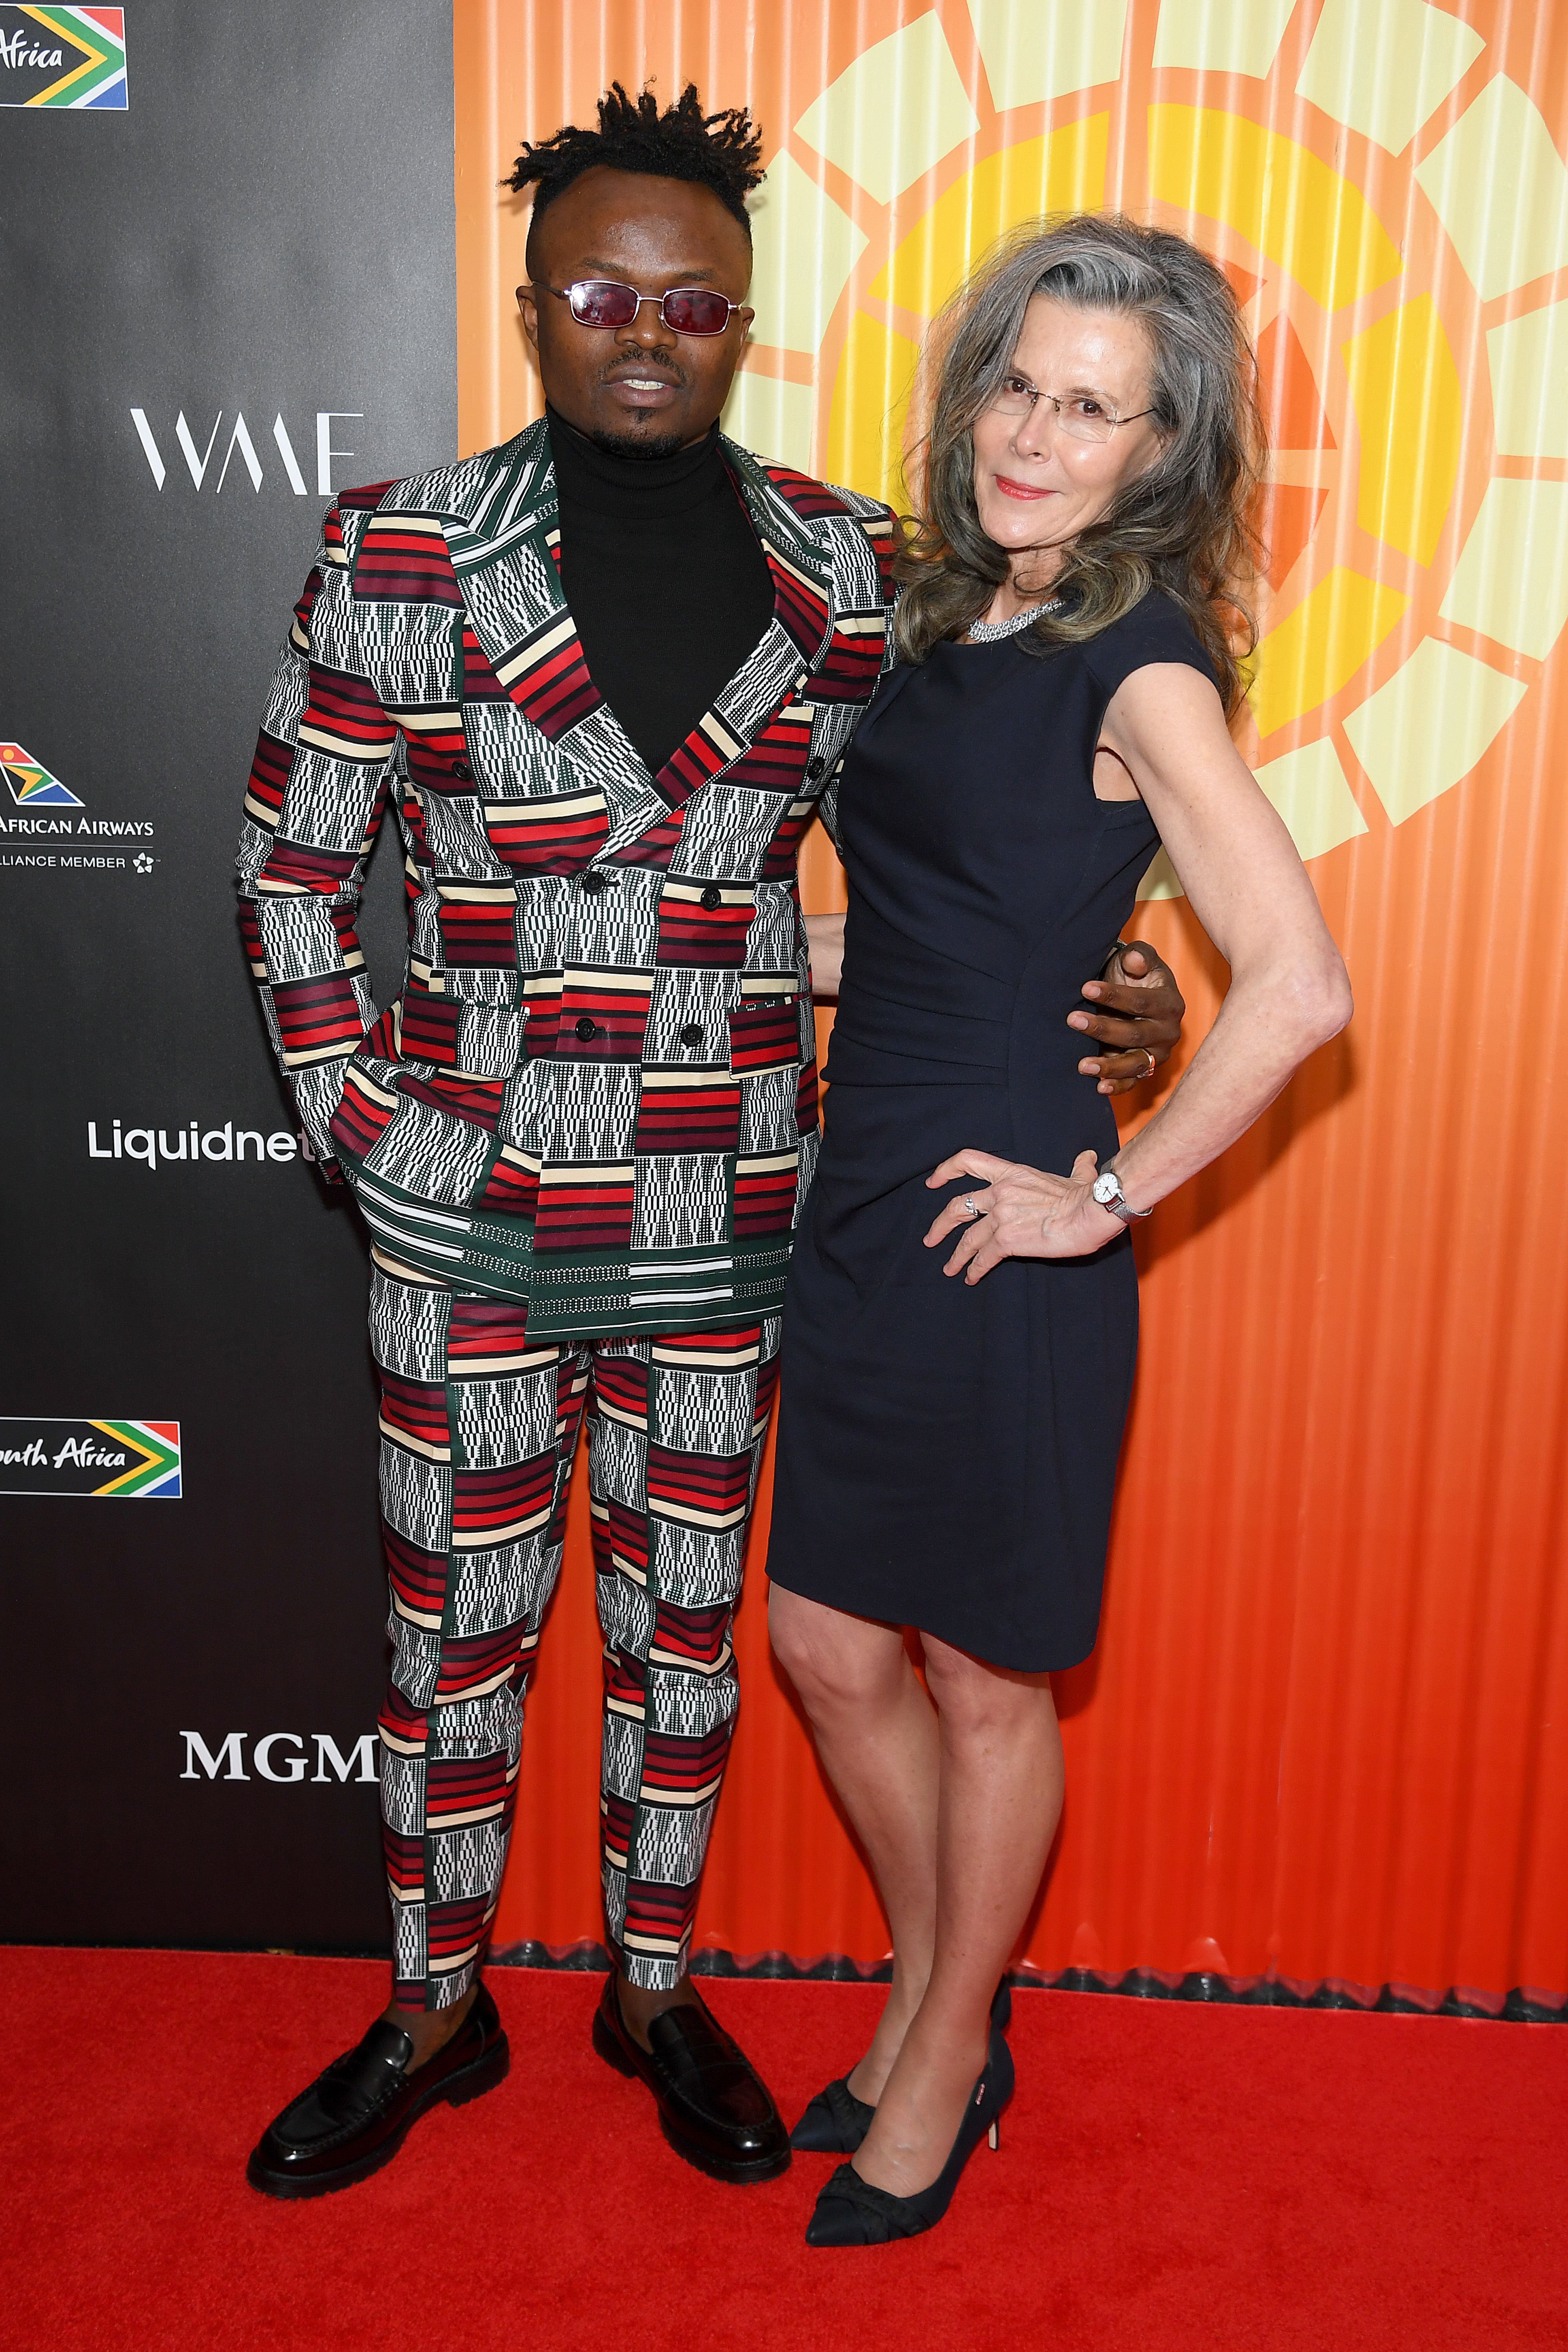 Tresor and Lorna Scott at the CTAOP Charity Auction held last week  Charlize Theron And Inverroche Gin Bring A list Celebrities A Taste Of The Southern Tip Of Africa